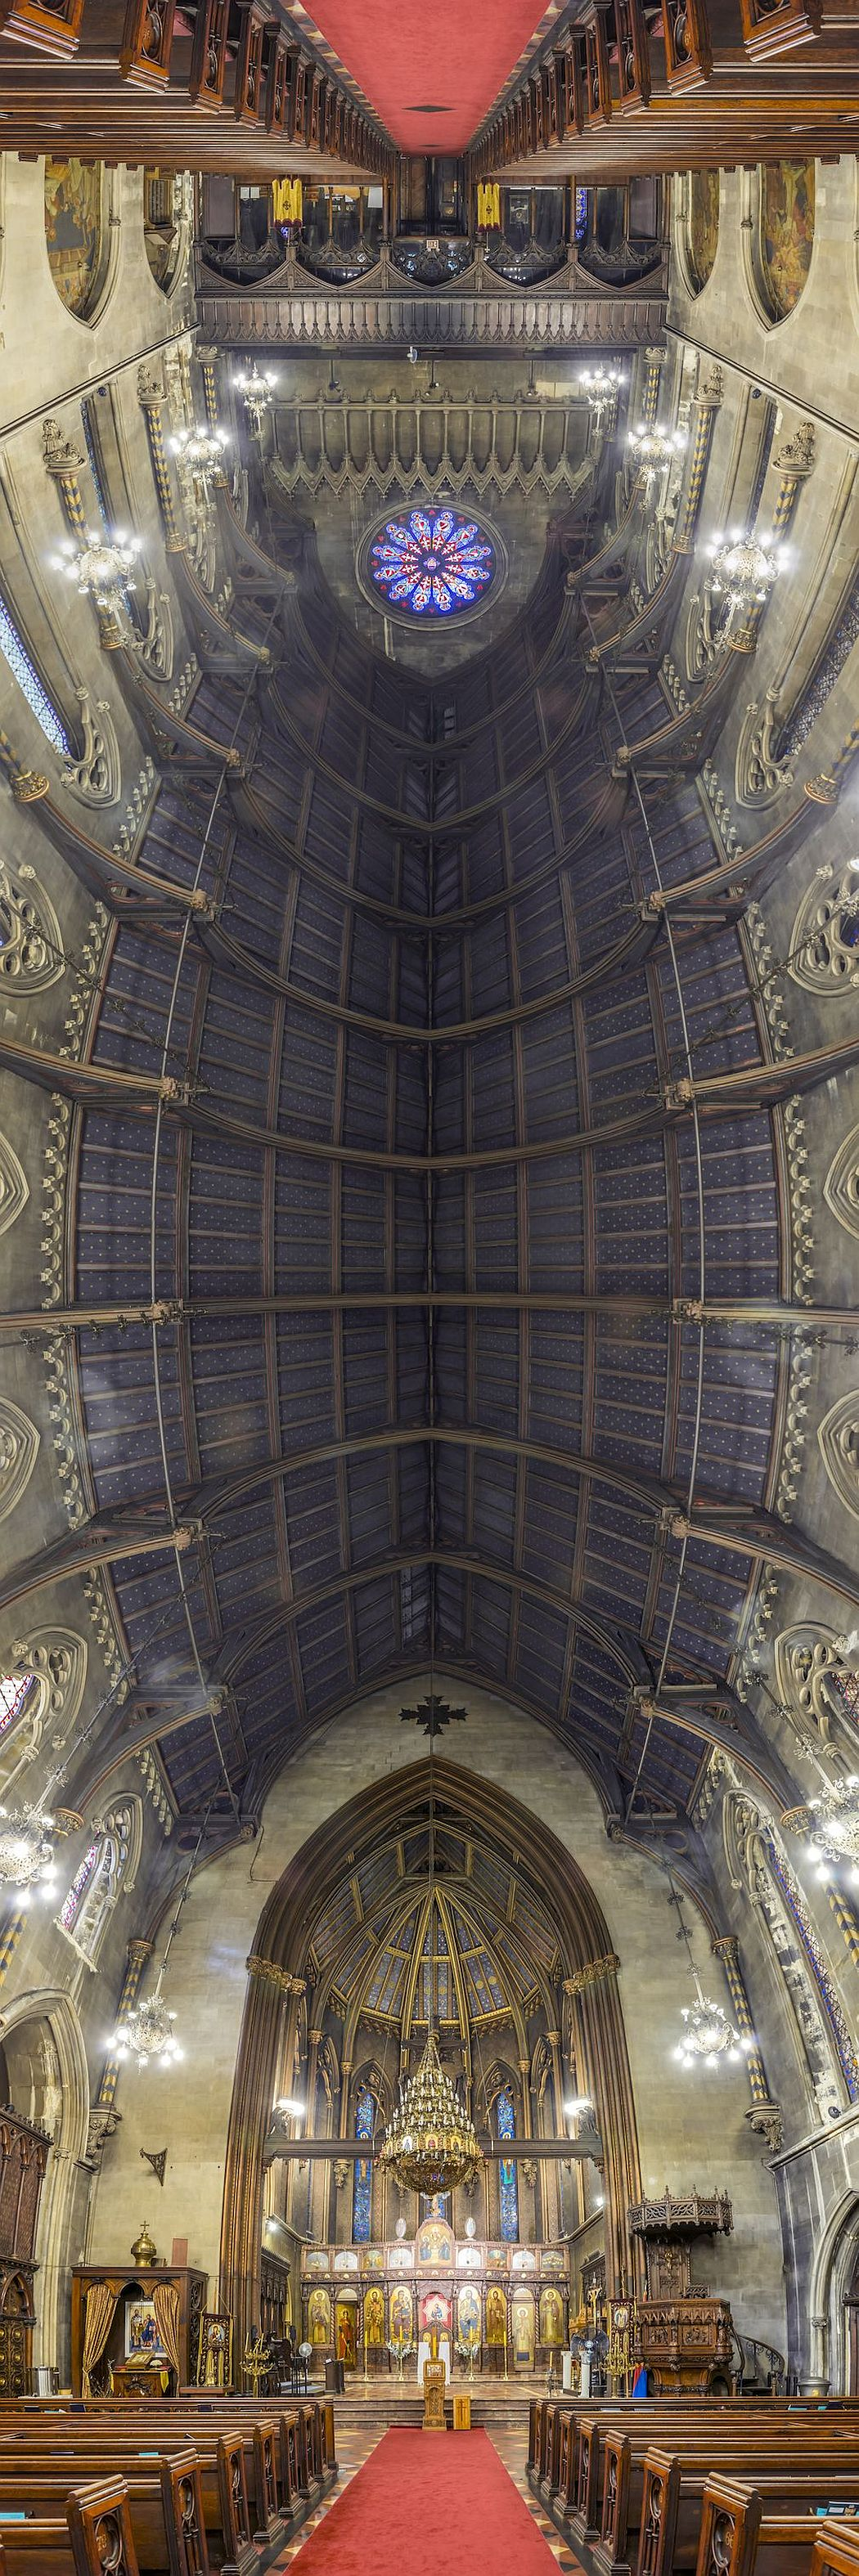 richard-silver-vertical-panoramas-of-new-york-churches-05